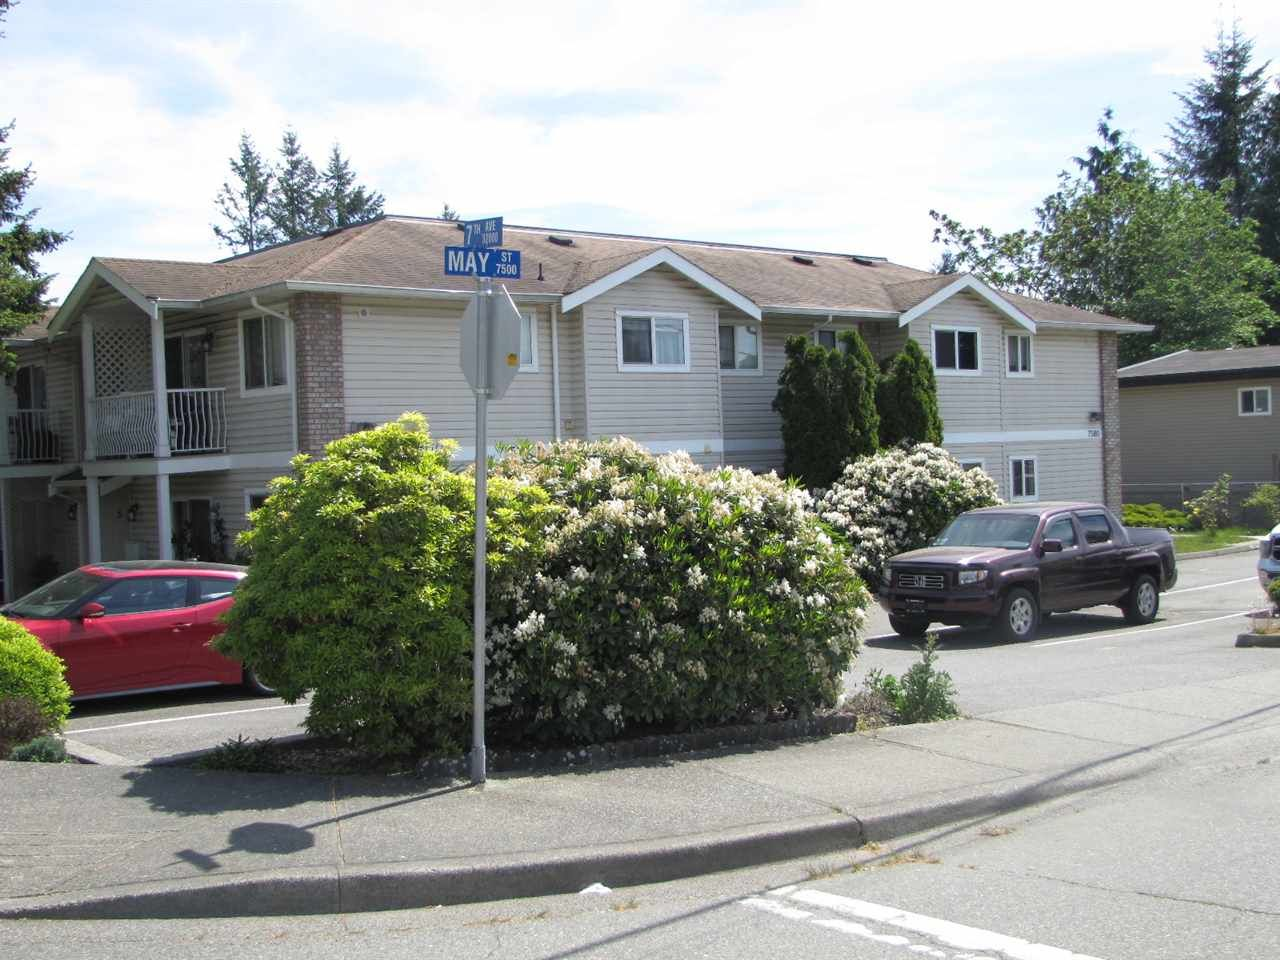 Main Photo: 4 7590 MAY Street in Mission: Mission BC Townhouse for sale : MLS®# R2361717